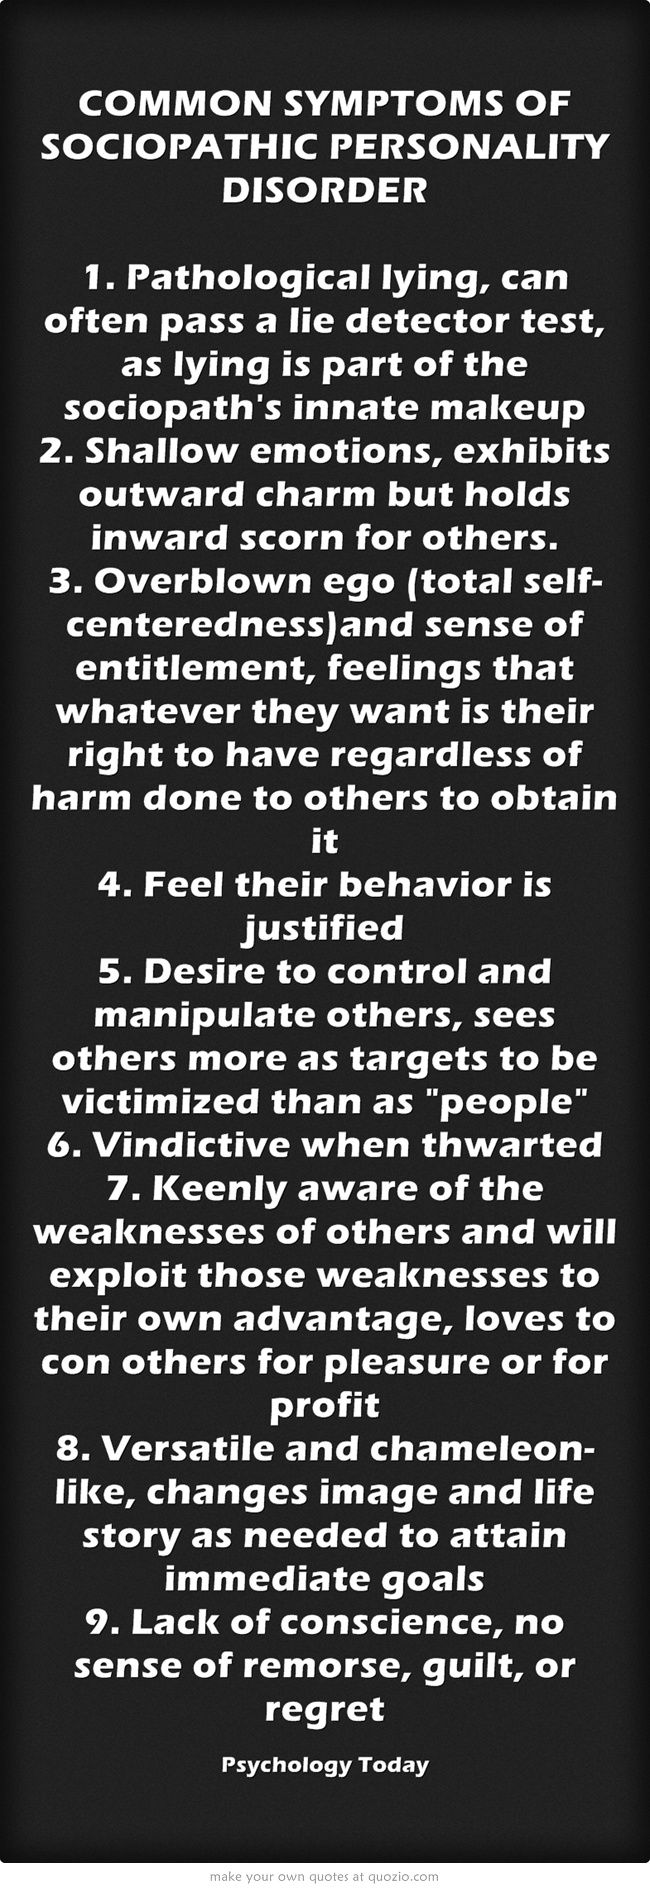 This is a perfect and almost exact description of two sociopaths I was unfortunate enough to have known. One even went so far as to change his name. These are the types of individuals who become involved in gang-stalking and strategically destroying other human beings. Not surprisingly, these traits are common in both politicians and murderers. This is how they operate...